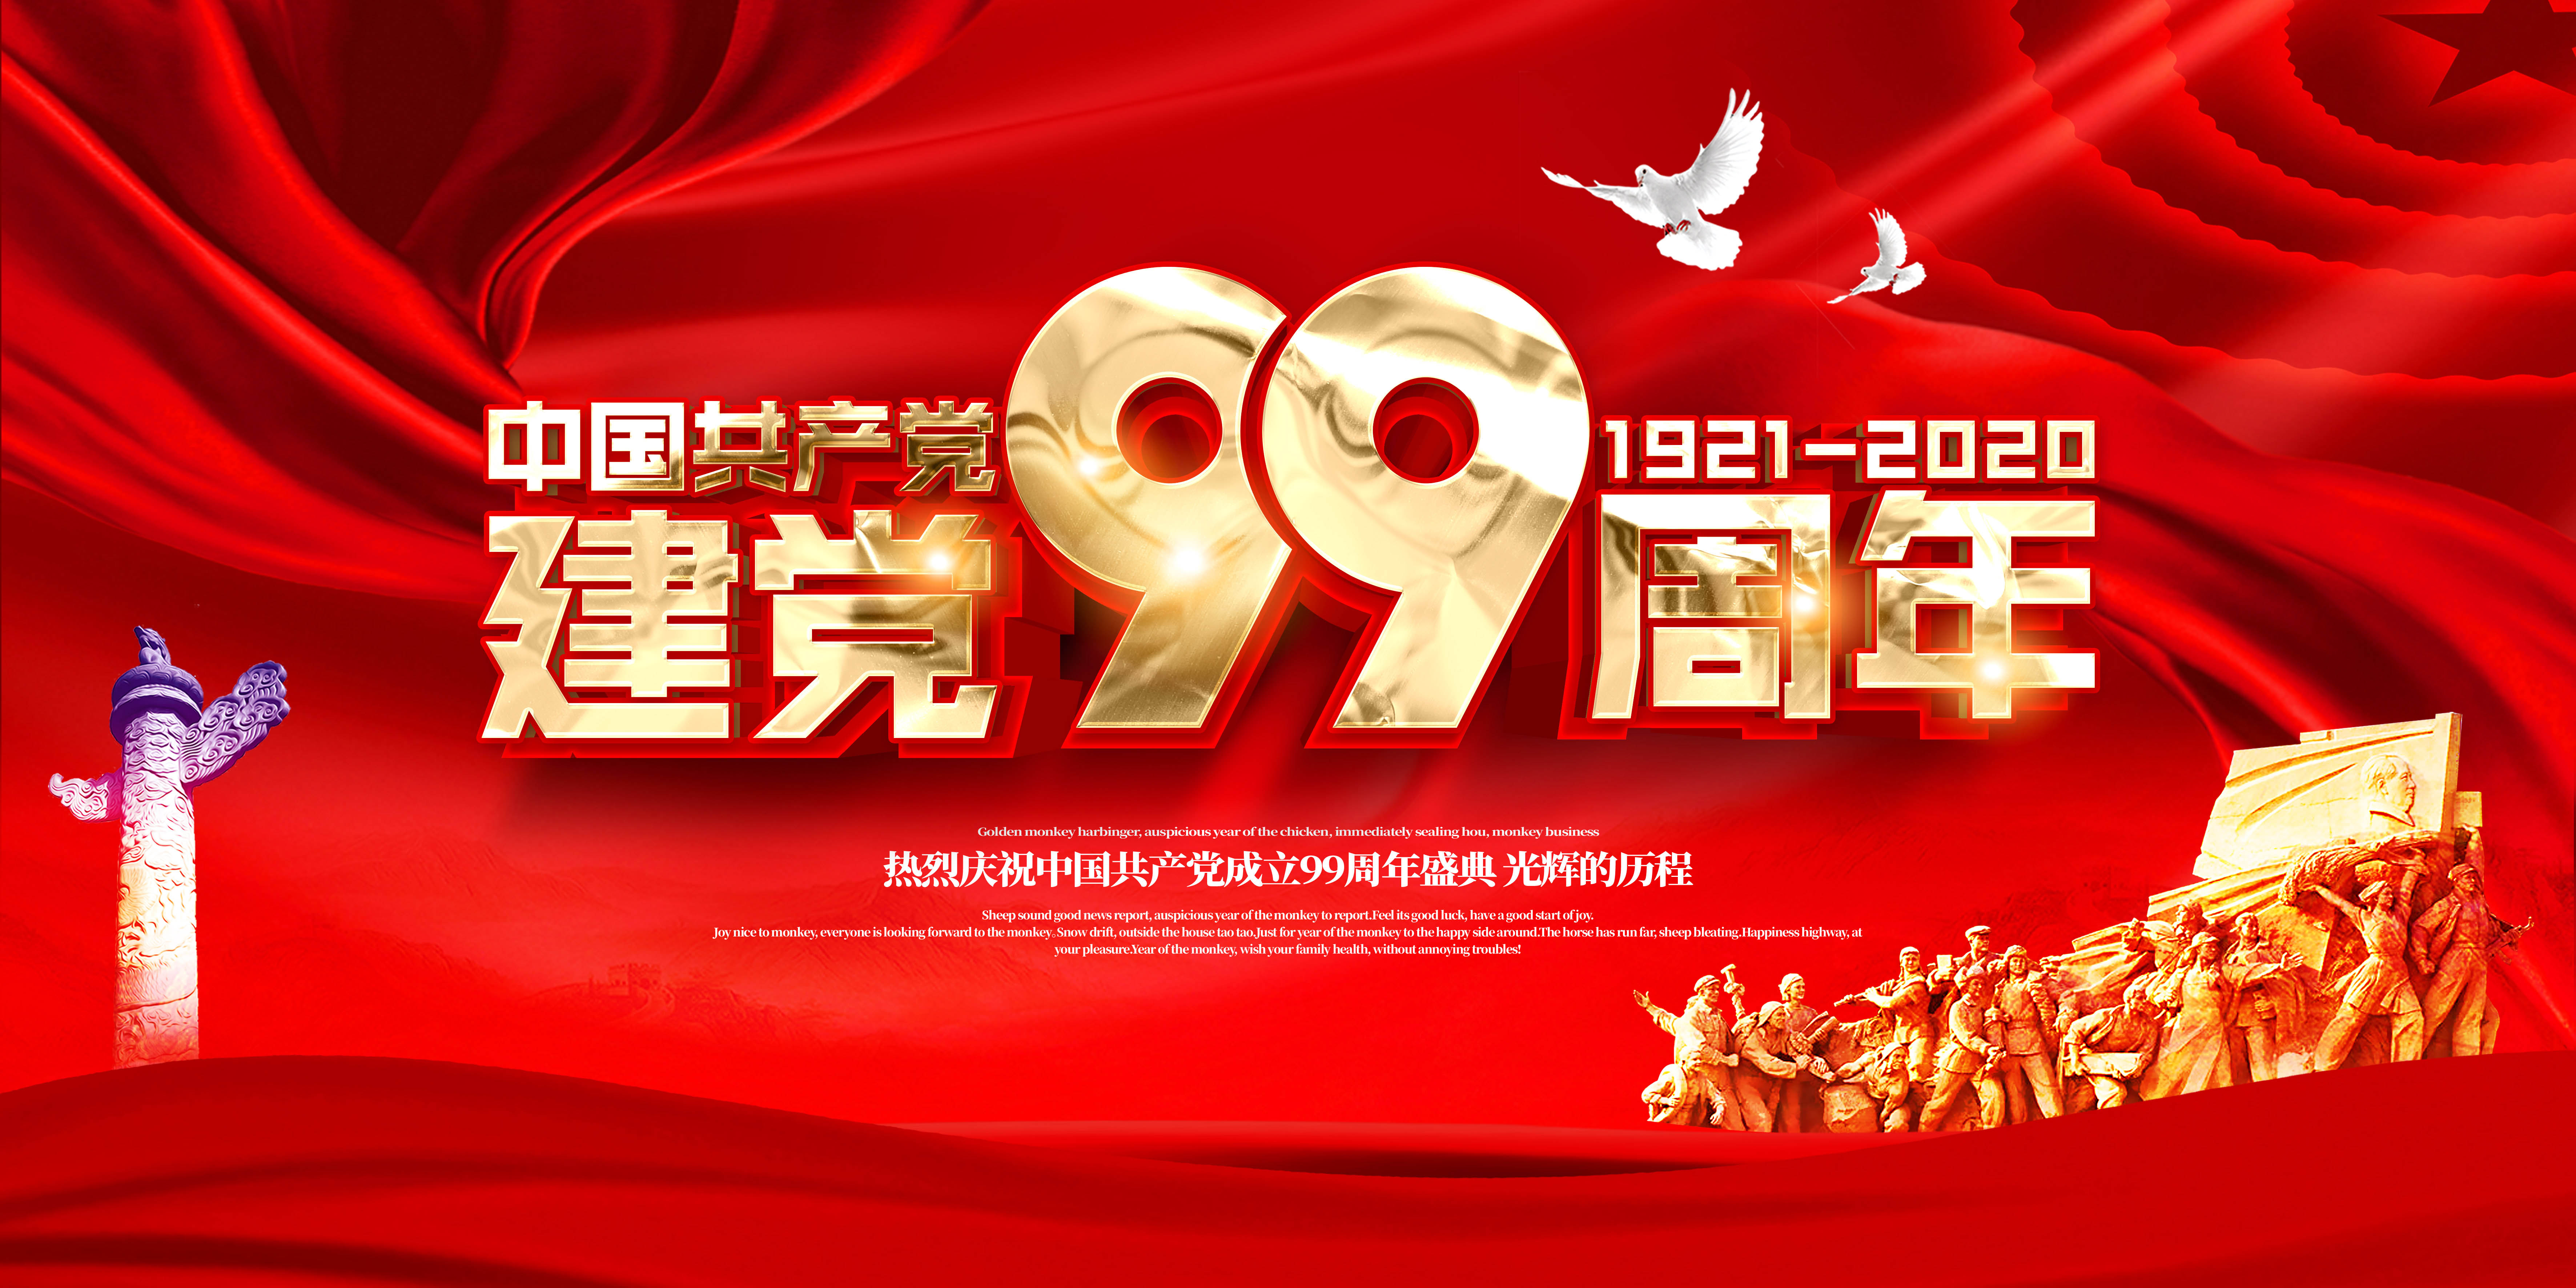 Warmly celebrate the 99th anniversary of the founding of the Communist Party of China